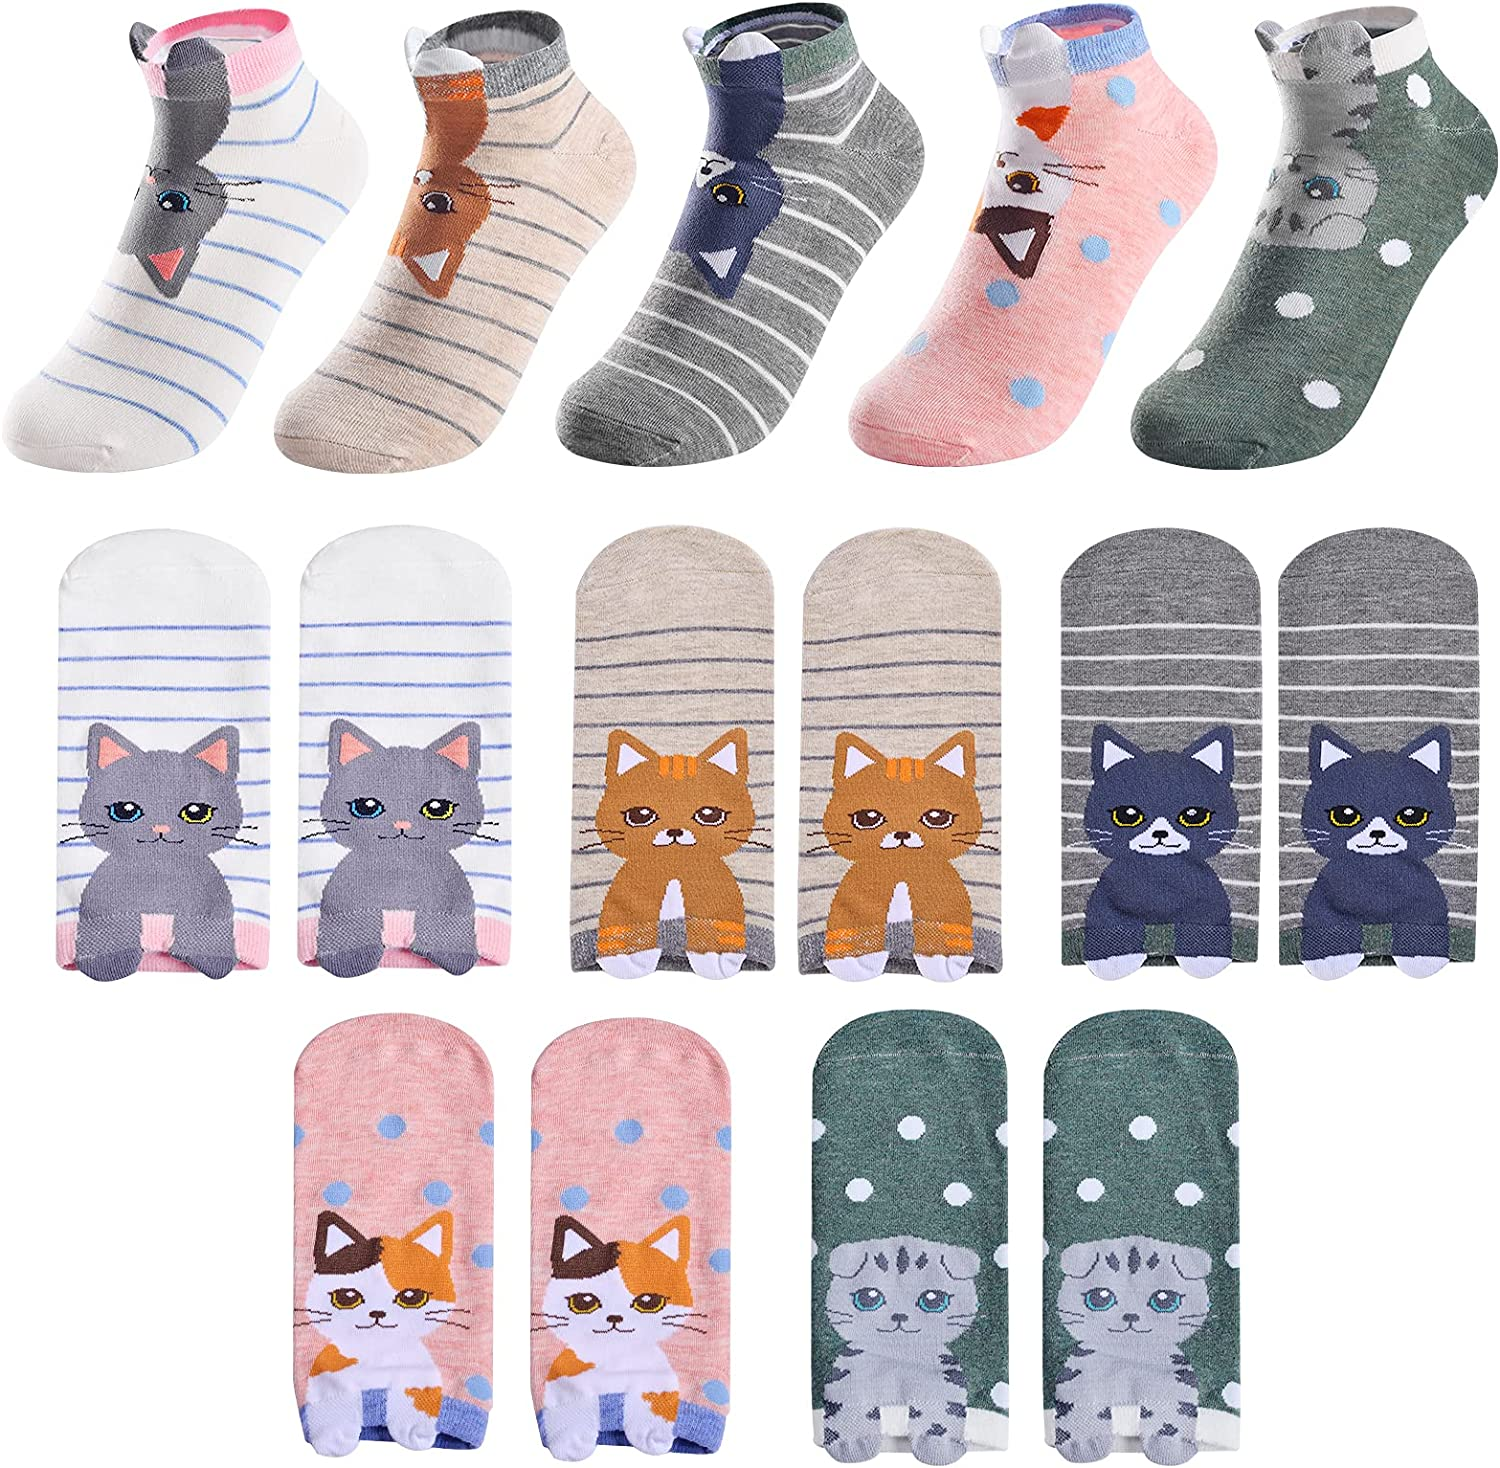 EJURLF Cute Ankle Socks for Low FUN Cat Super special price Novelty Women Ranking integrated 1st place